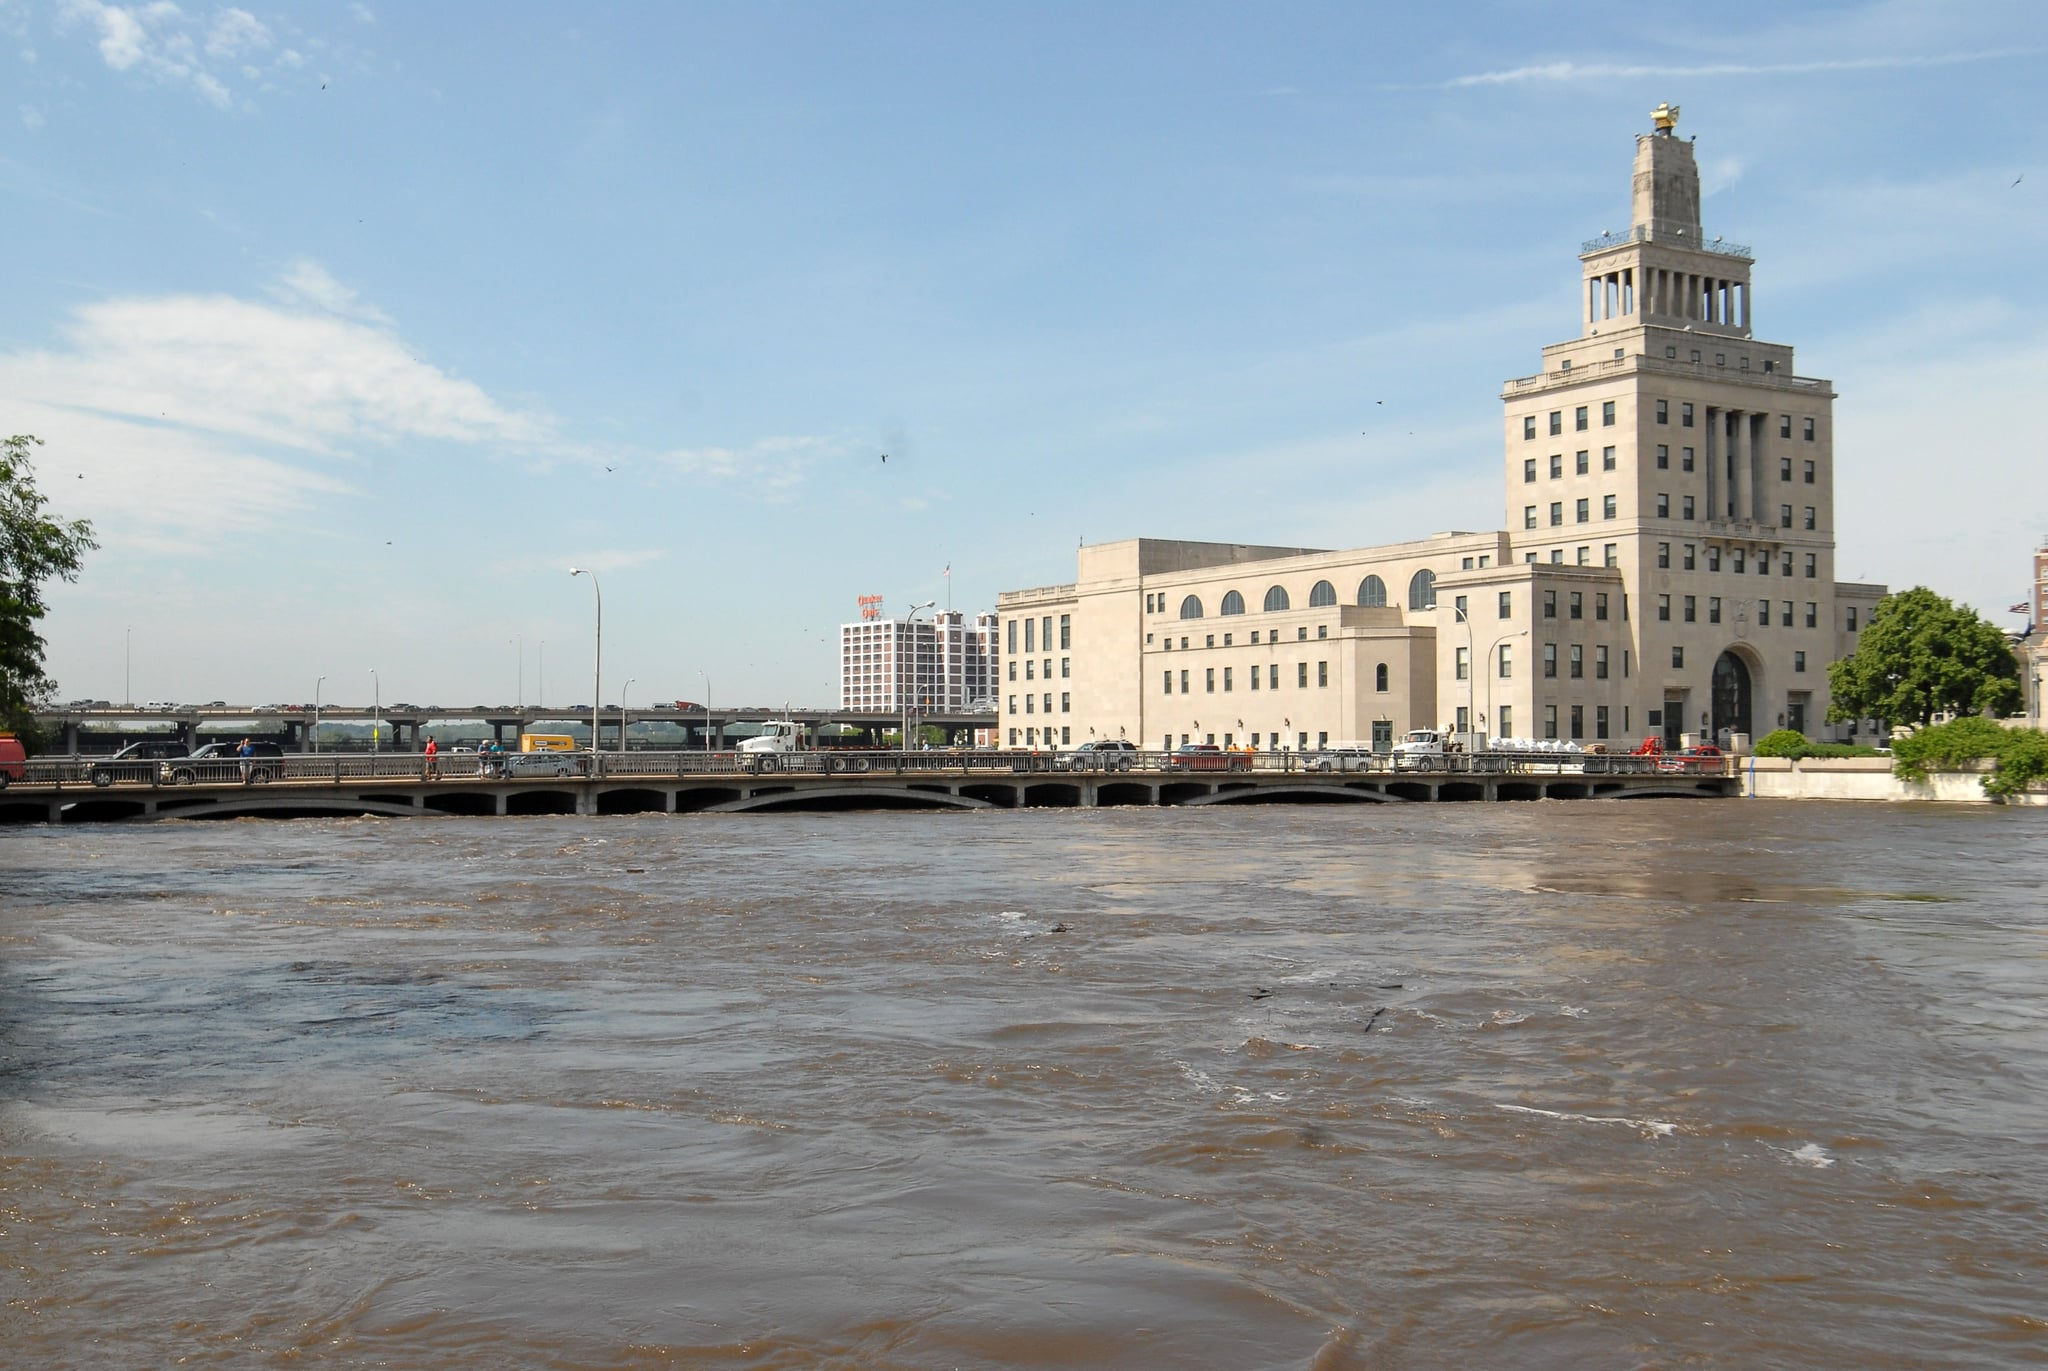 The Federal Building stands on an island next to the rising Cedar River.